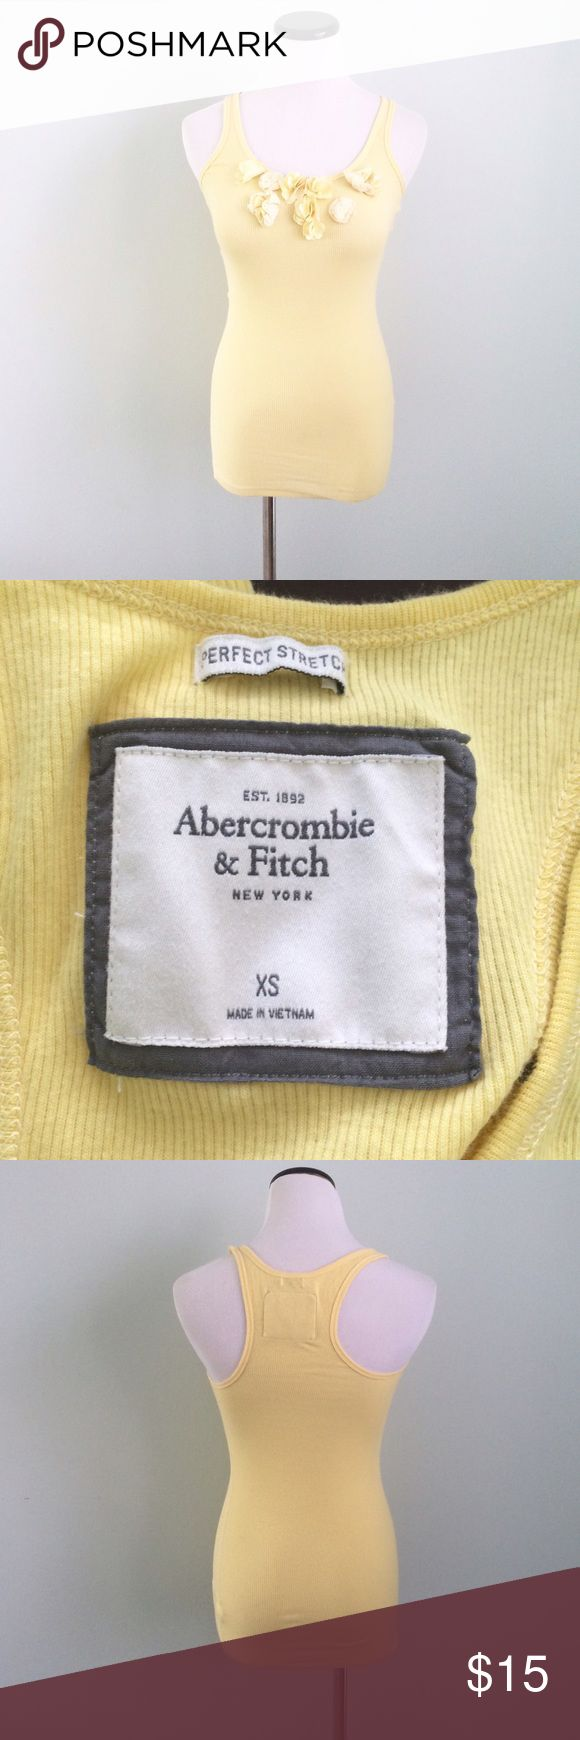 Abercrombie & Fitch yellow Tank Top Ribbed Tank Top with flowers in front. Abercrombie & Fitch Tops Tank Tops